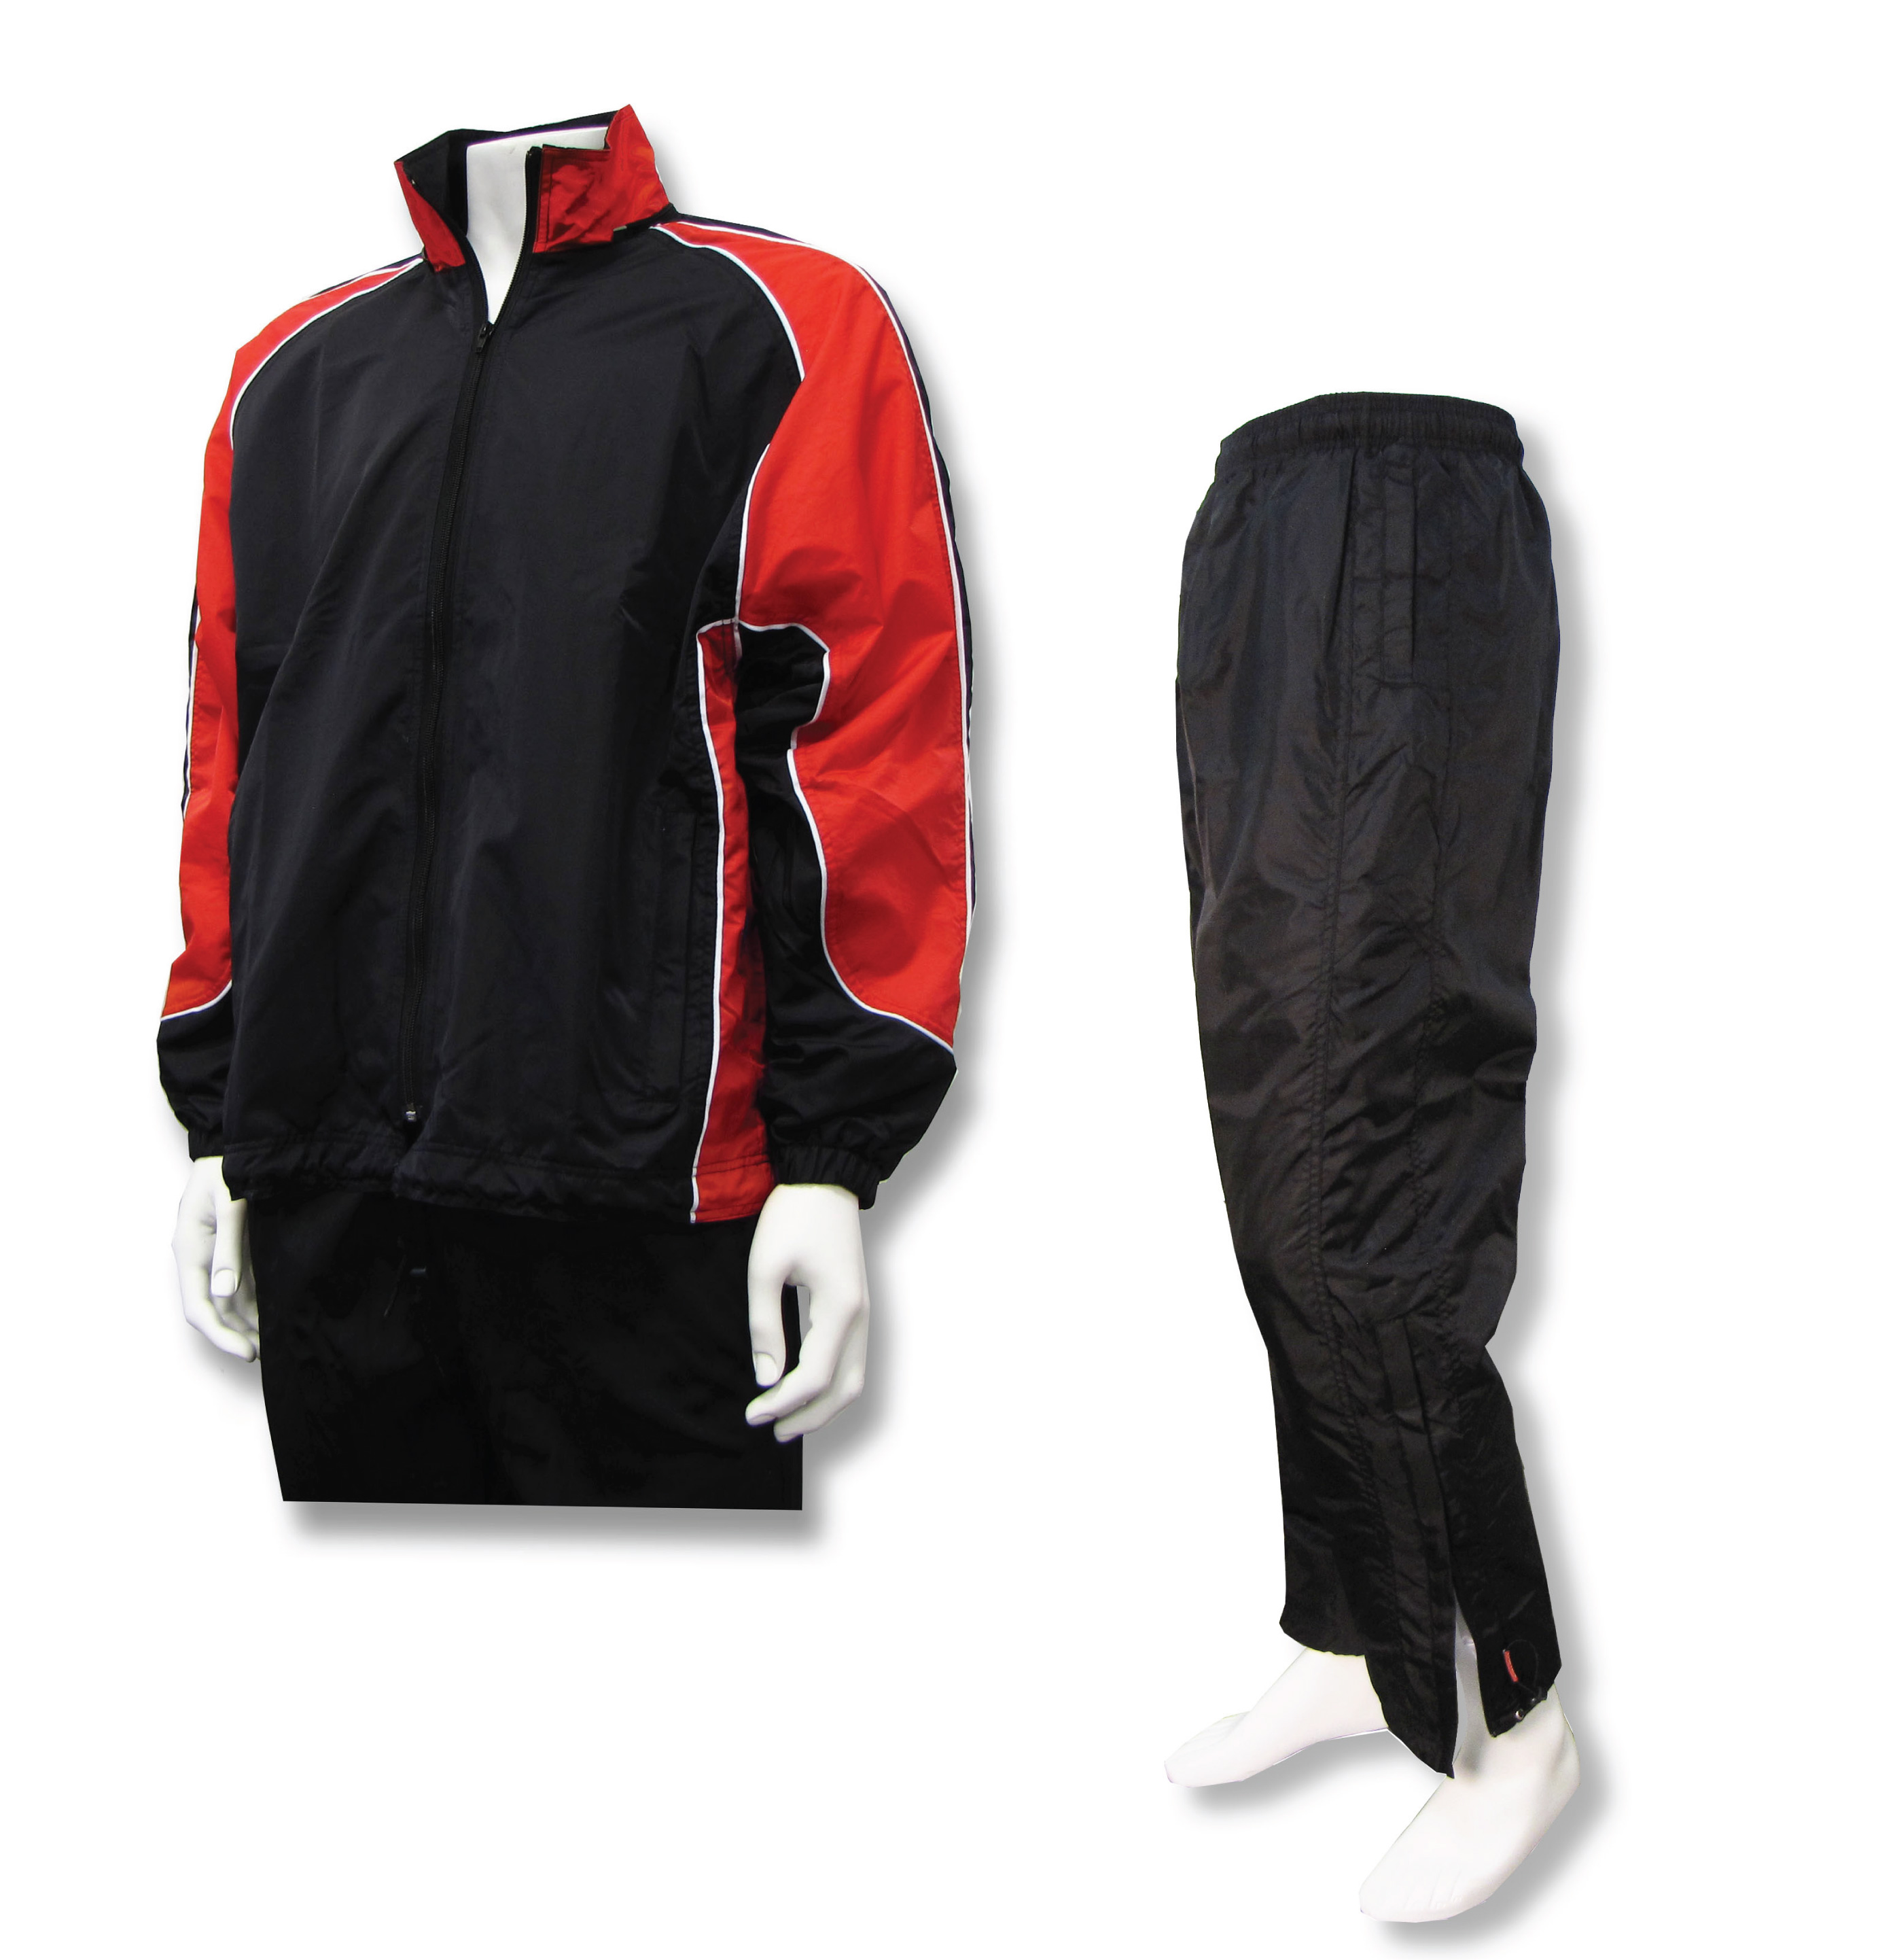 Viper warmup set with black/red jacket and black pants by Code Four Athletics